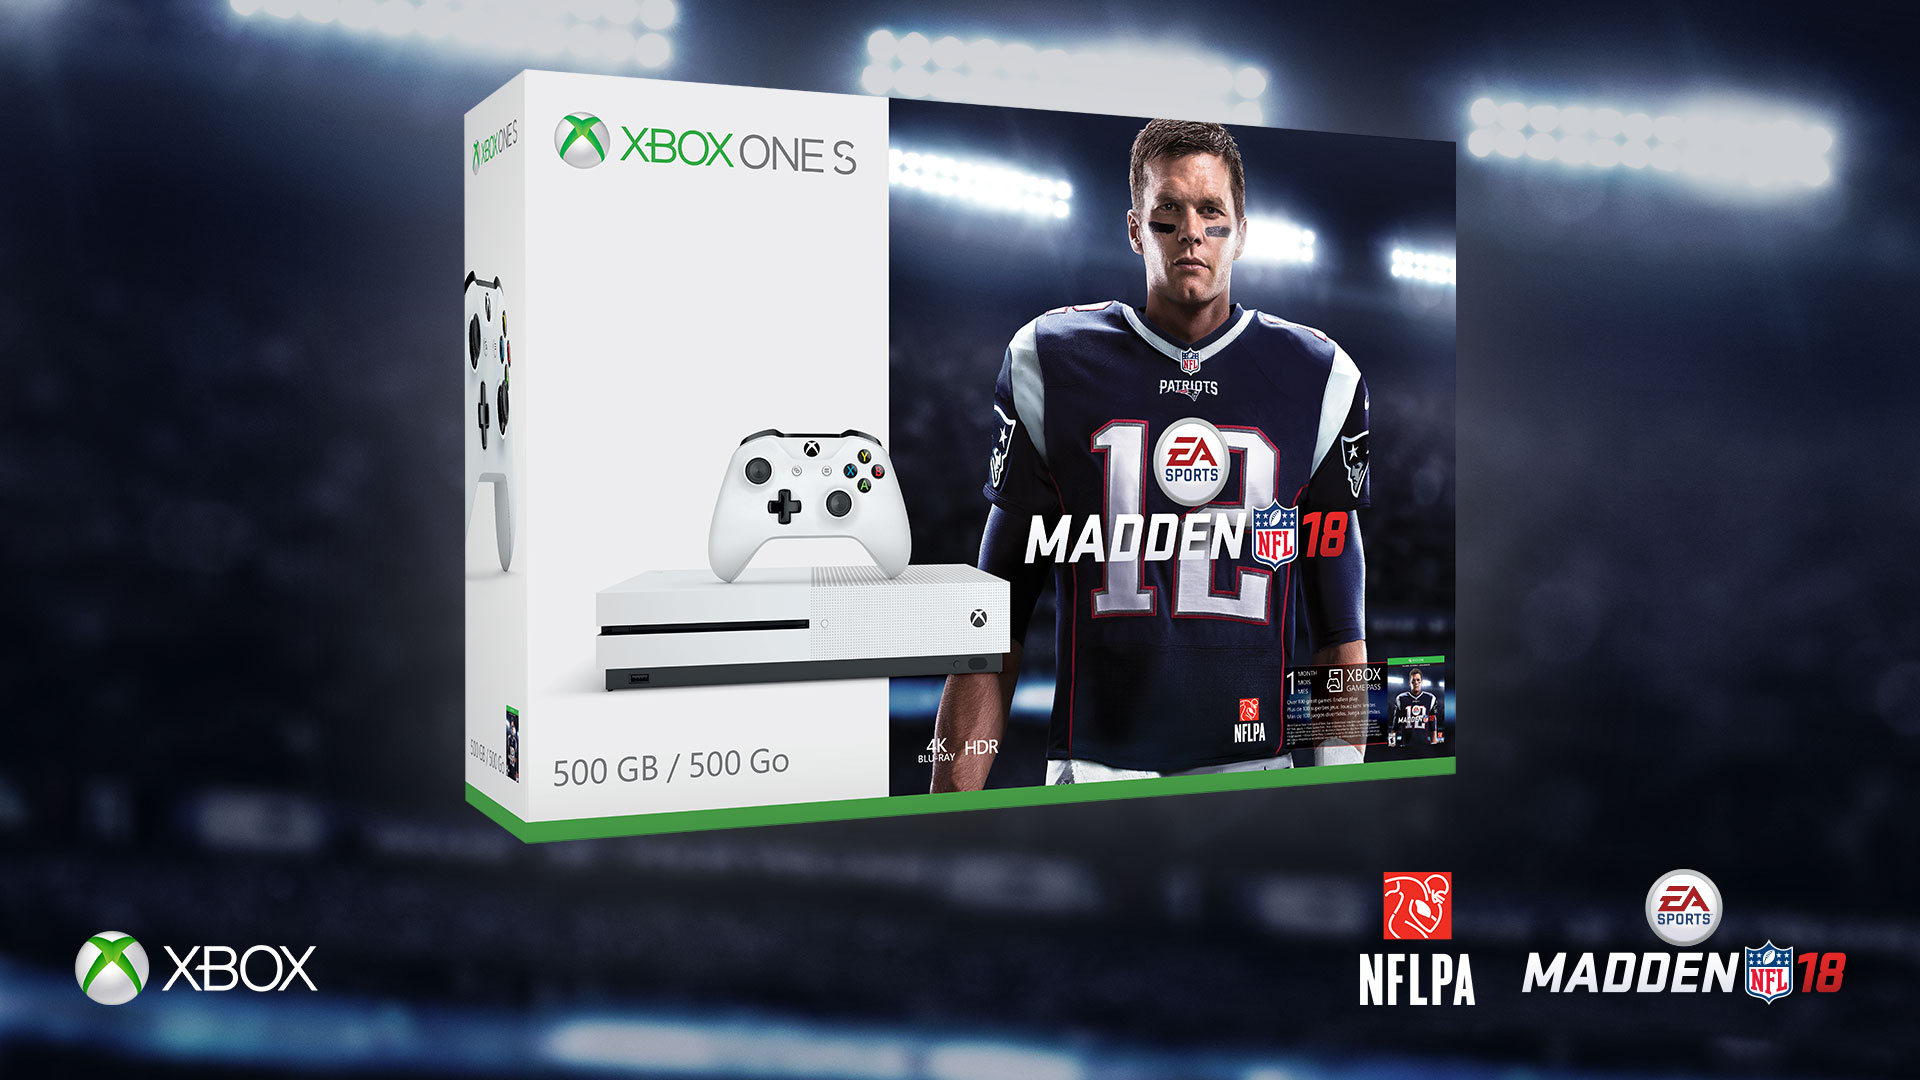 Get The Ultimate Madden Experience With The 500GB Xbox One